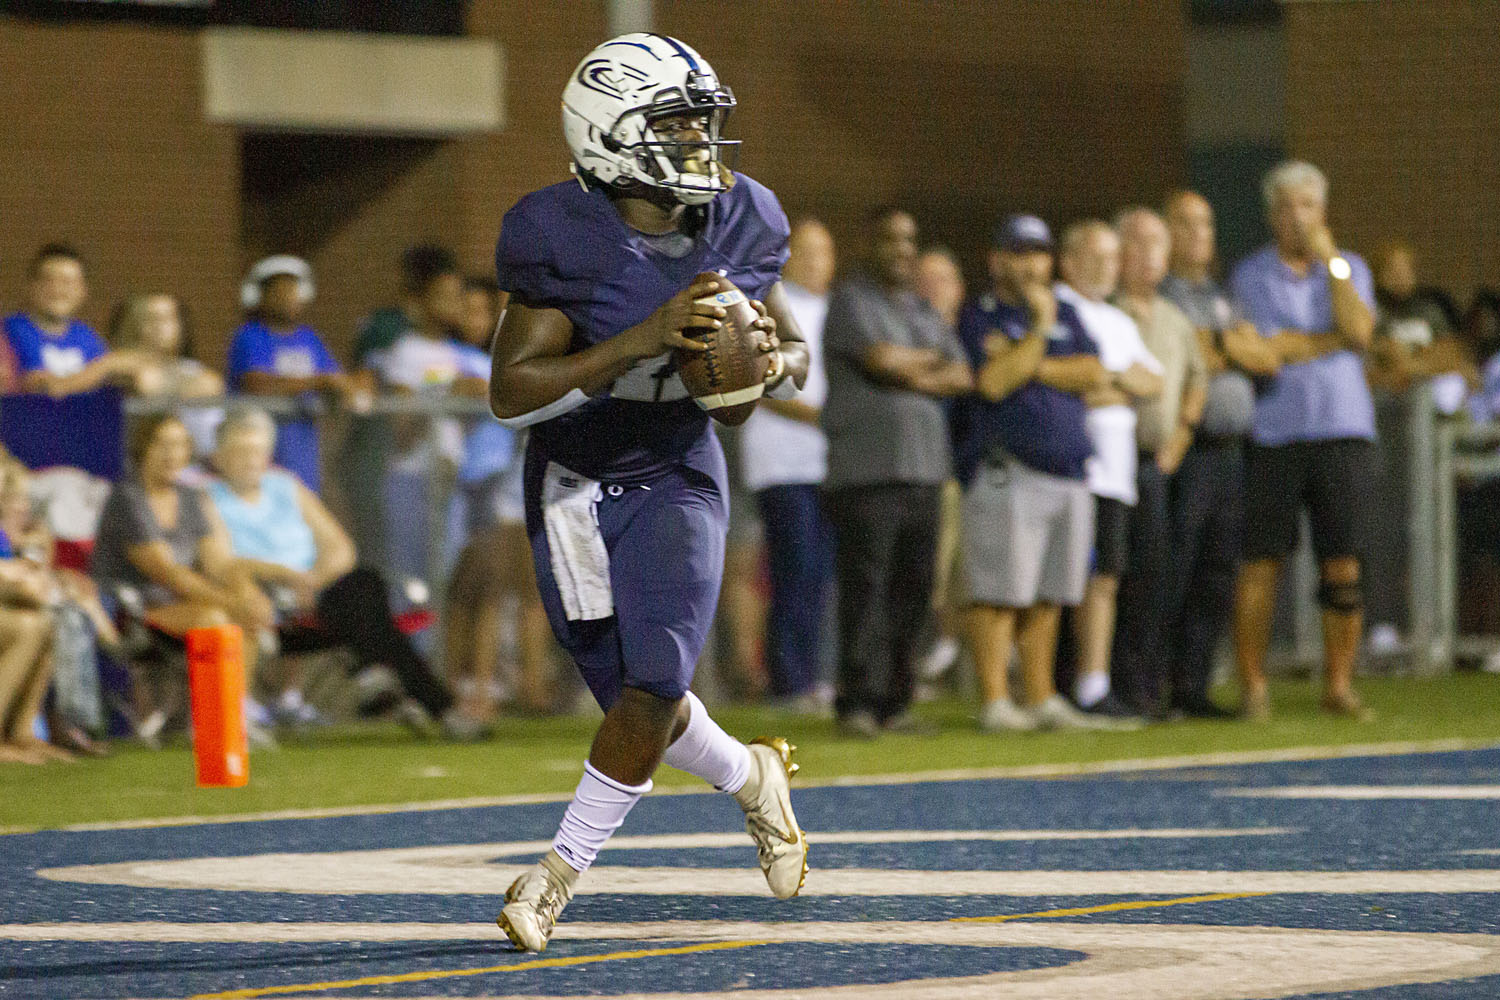 Clay-Chalkville returns to action with eyes set on Shades Valley